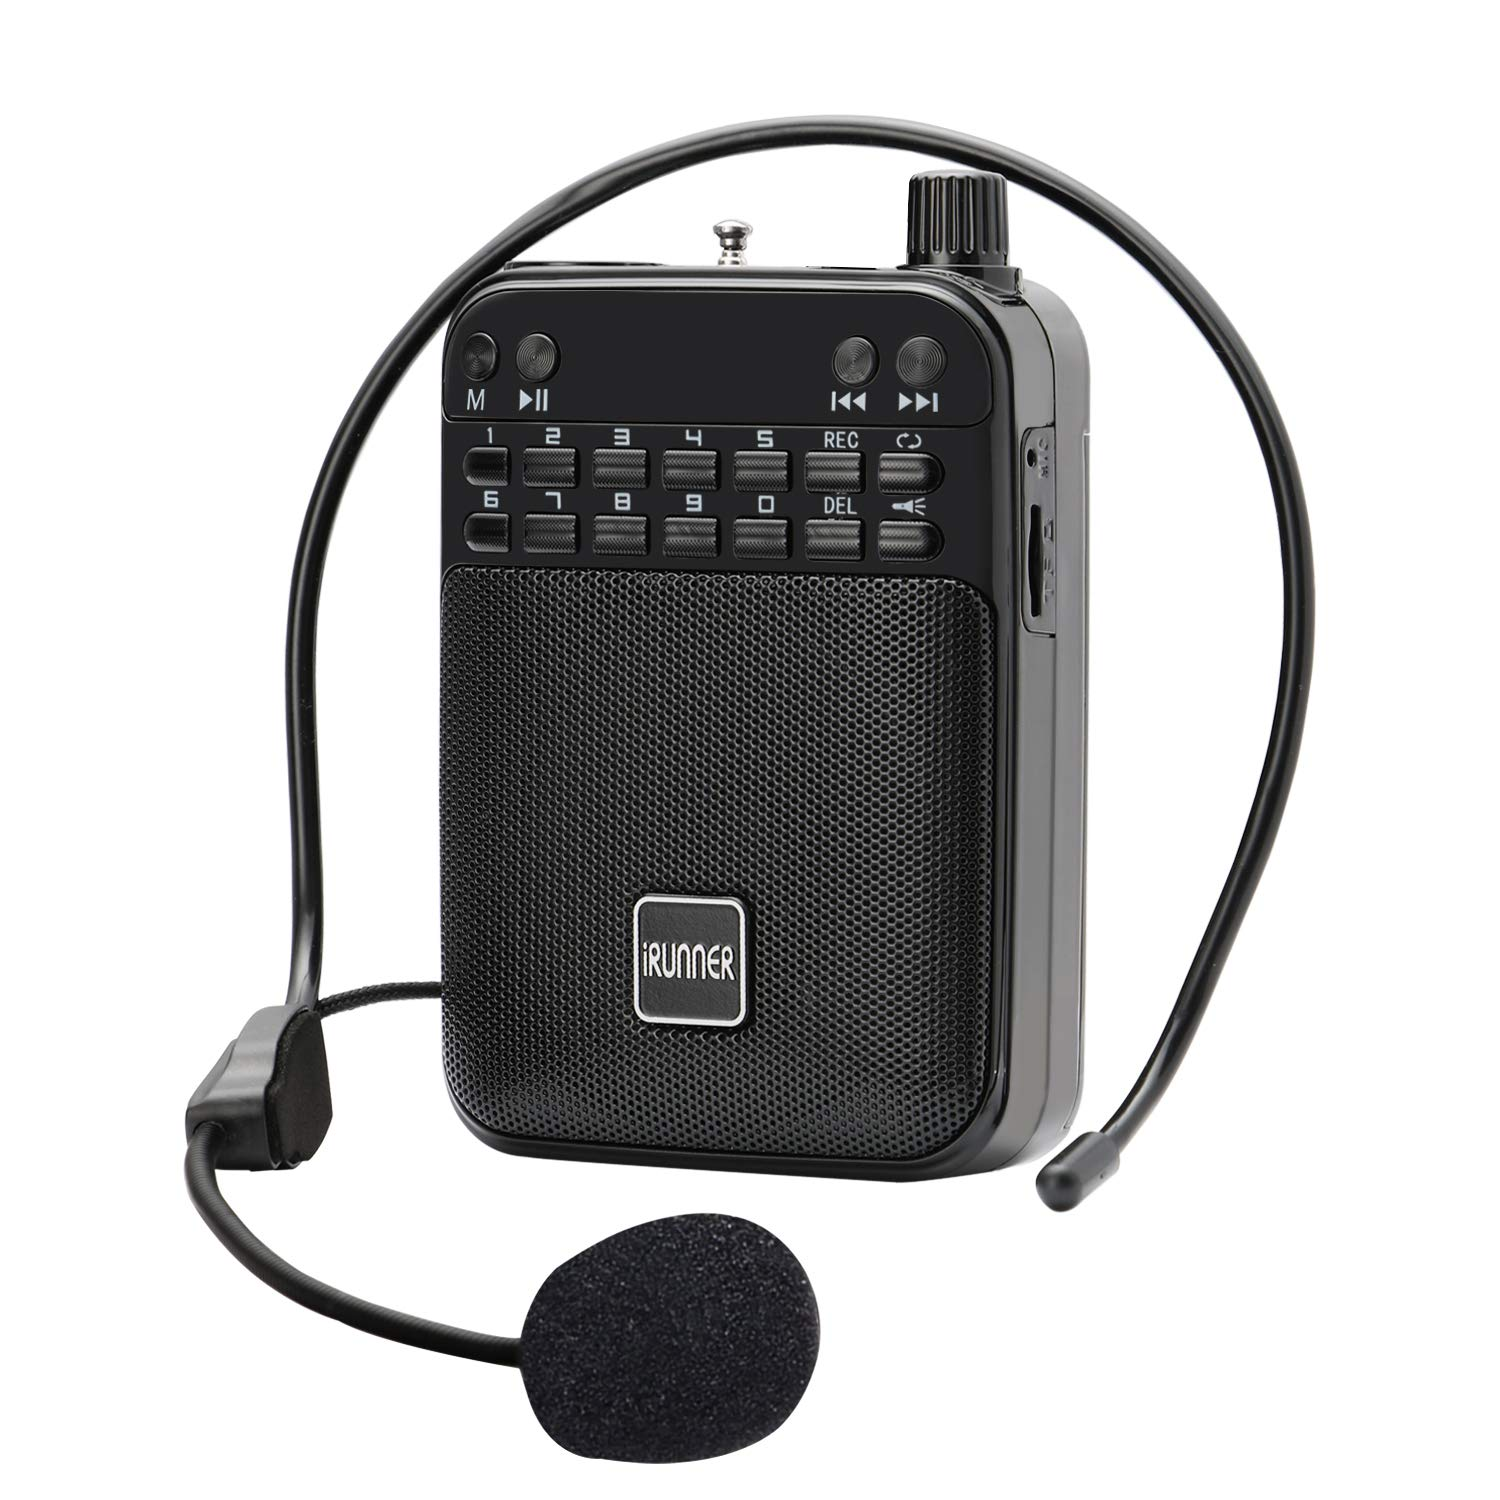 IRUNNER Voice Amplifier, Ultralight Portable Rechargeable PA System(2.5 inch) 5W 12 hours playtime with Wired Microphone and Waistband for Teachers, Presentations, Coaches, Tour Guides, Market